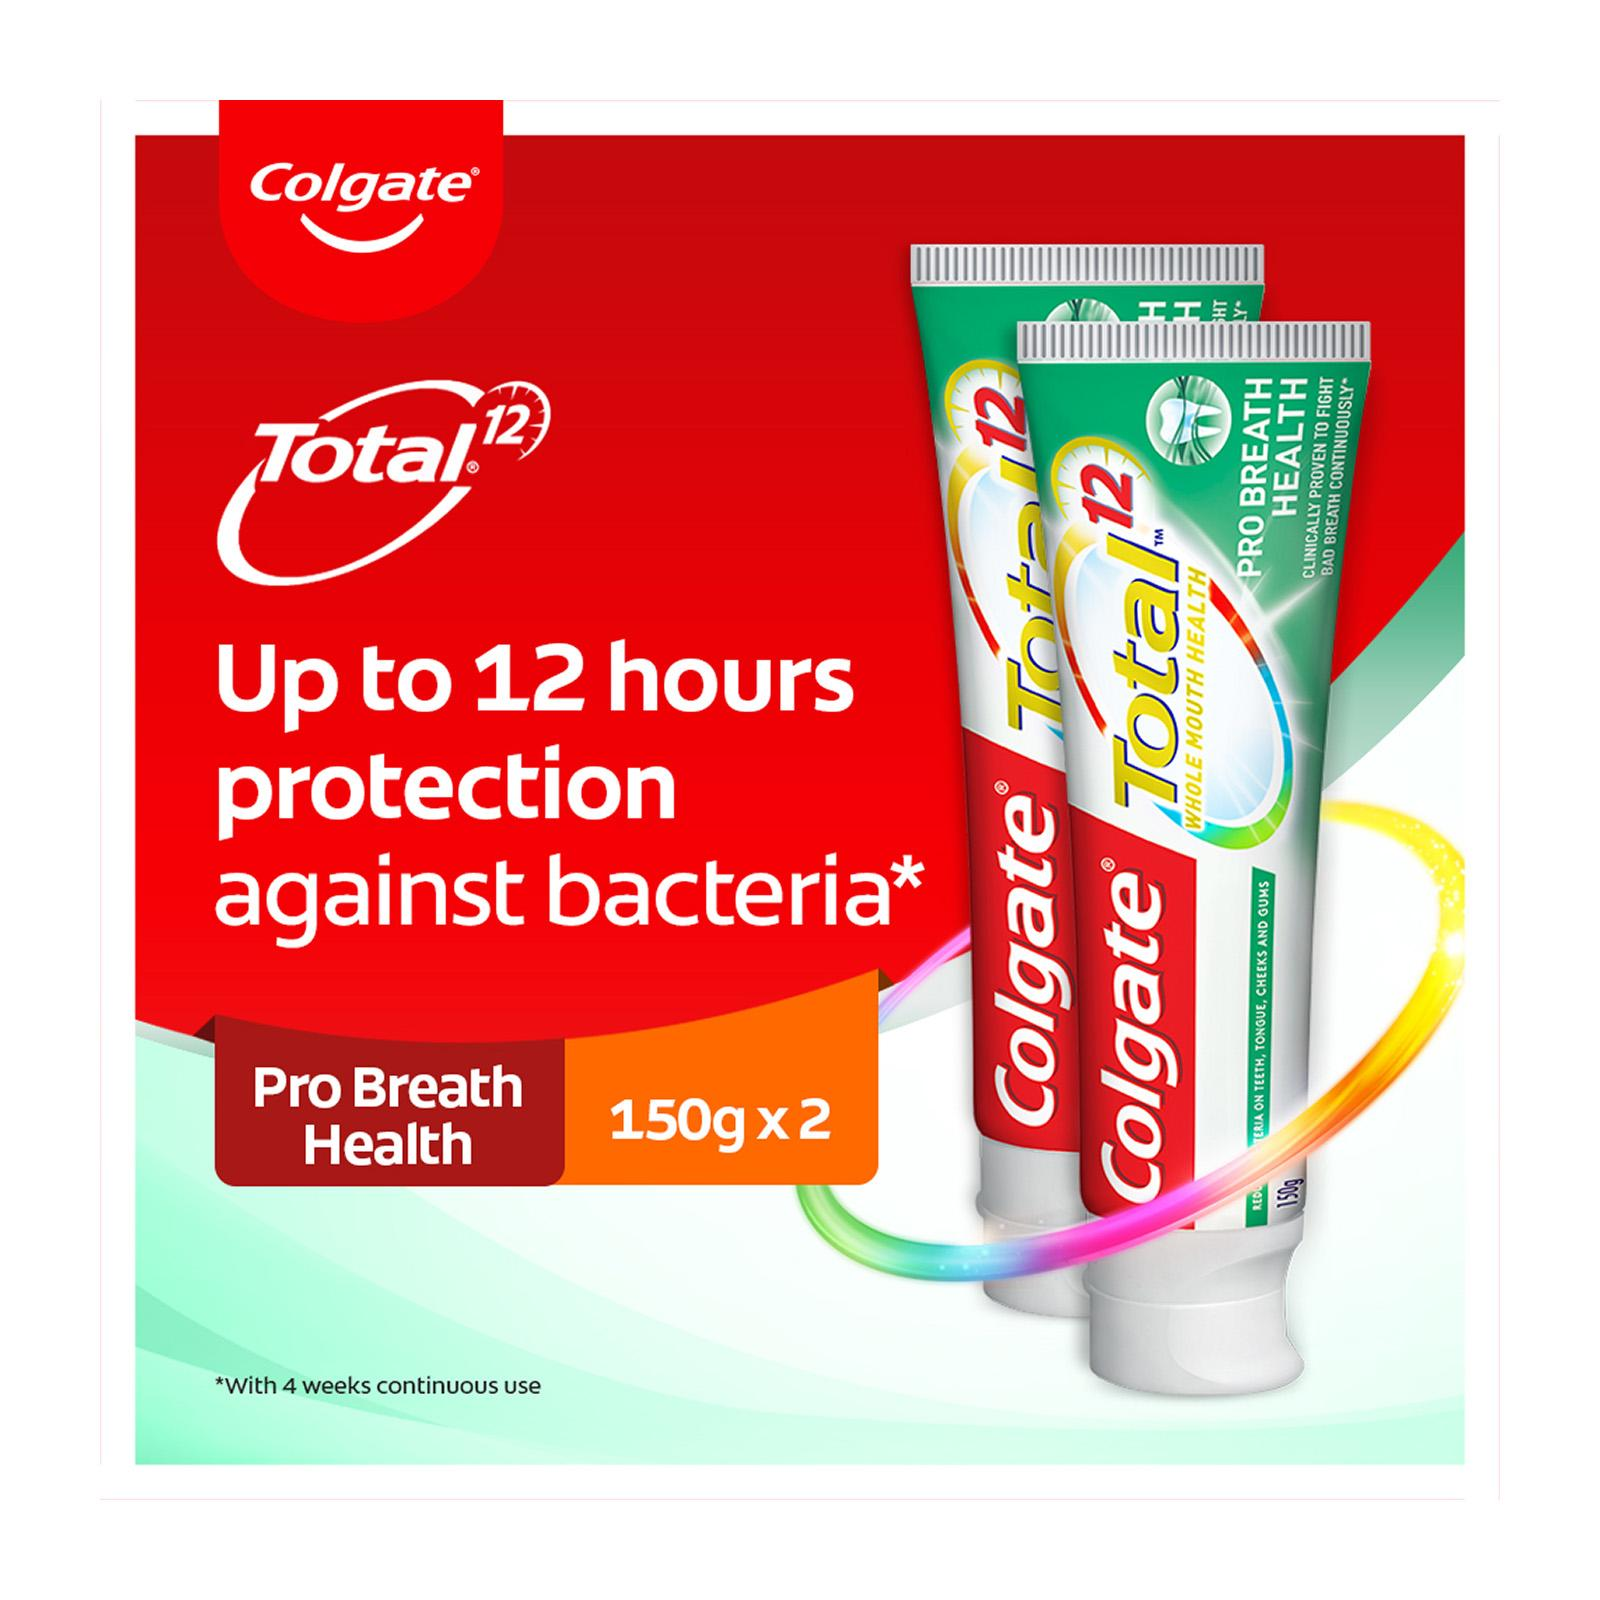 Colgate Total Professional Breath Health Antibacterial Toothpaste Valuepack 150g x 2